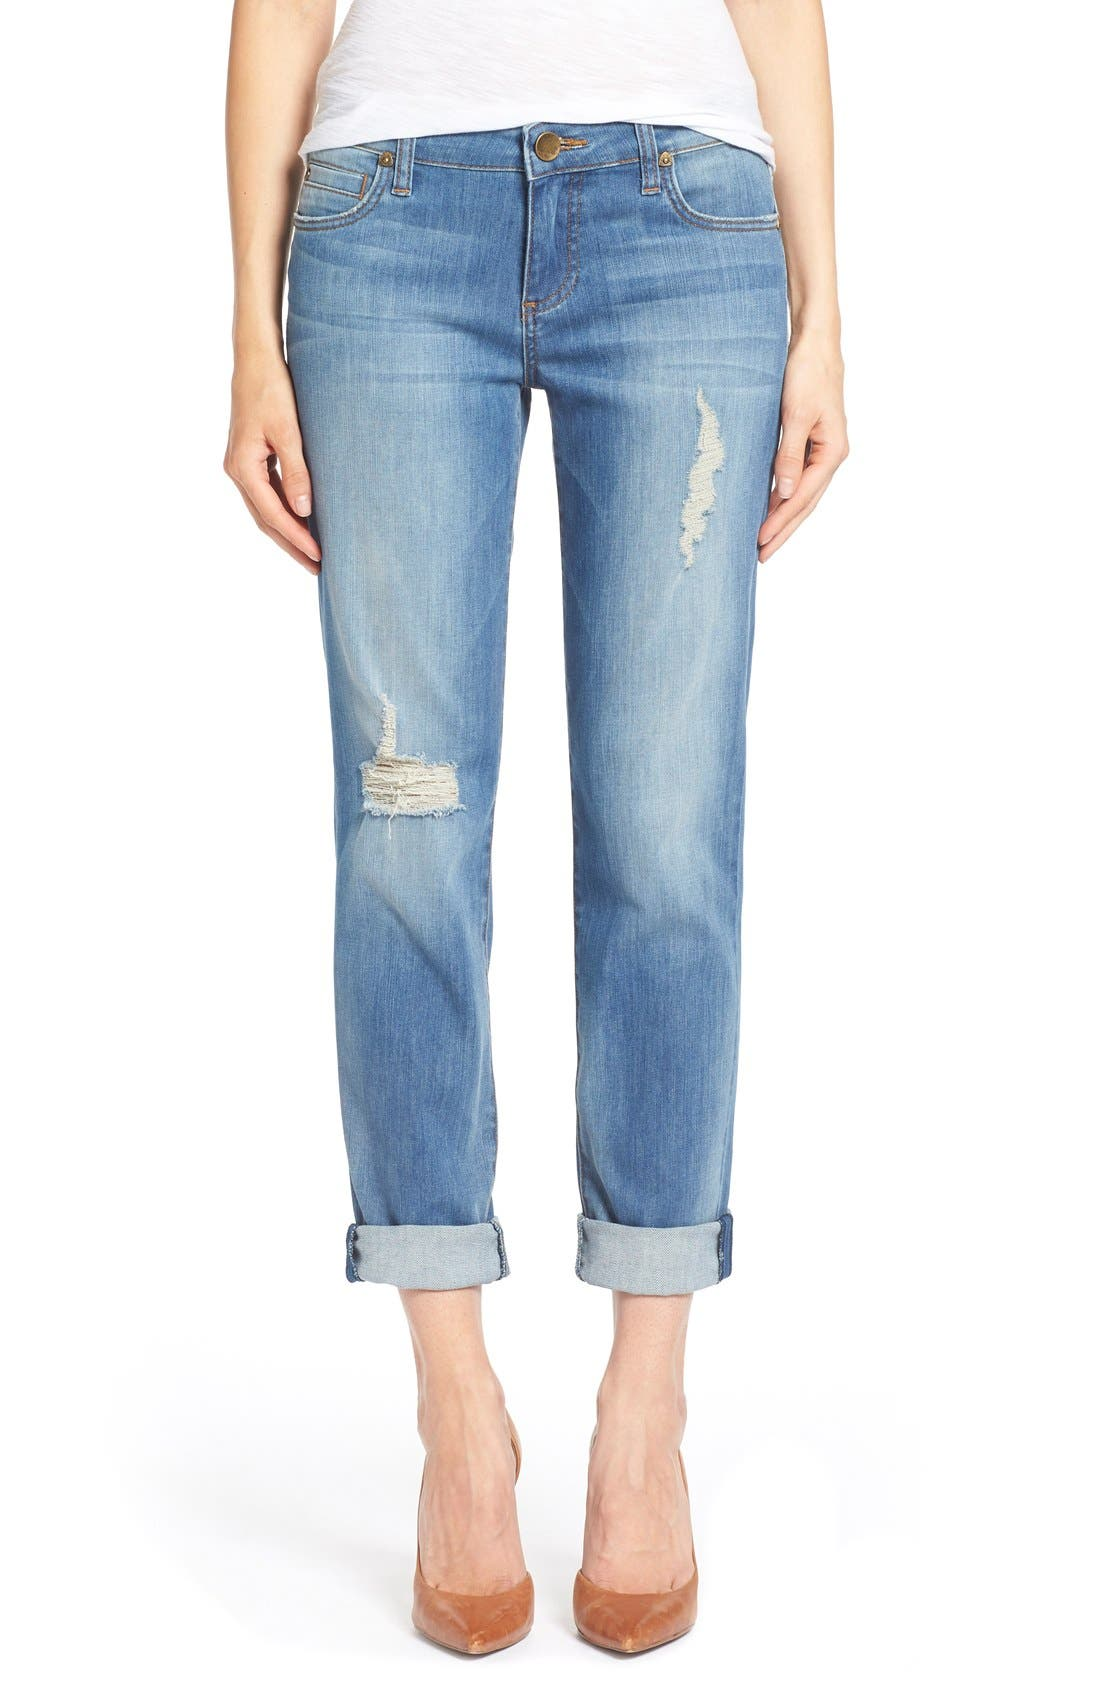 Main Image - KUT from the Kloth 'Catherine' Distressed Stretch Boyfriend Jeans (Smile)